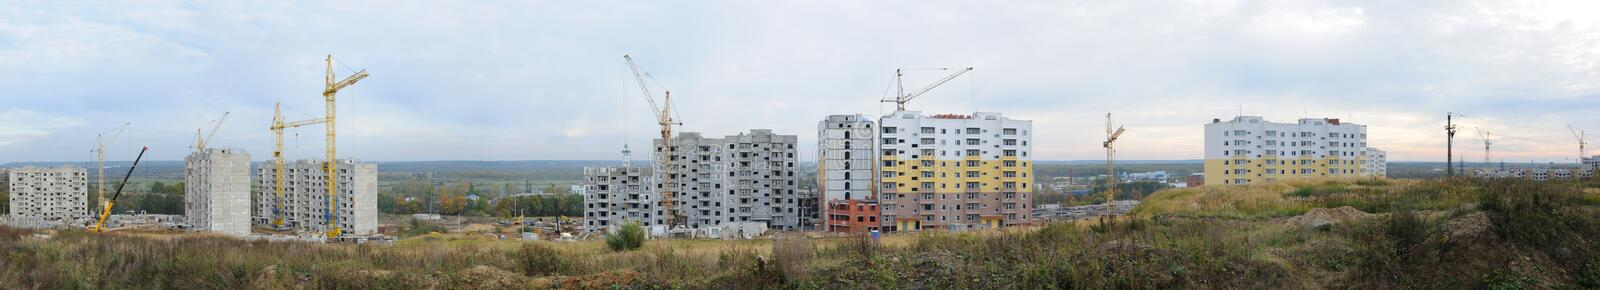 Download Apartment Building Under Construction Stock Photo - Image: 18161152